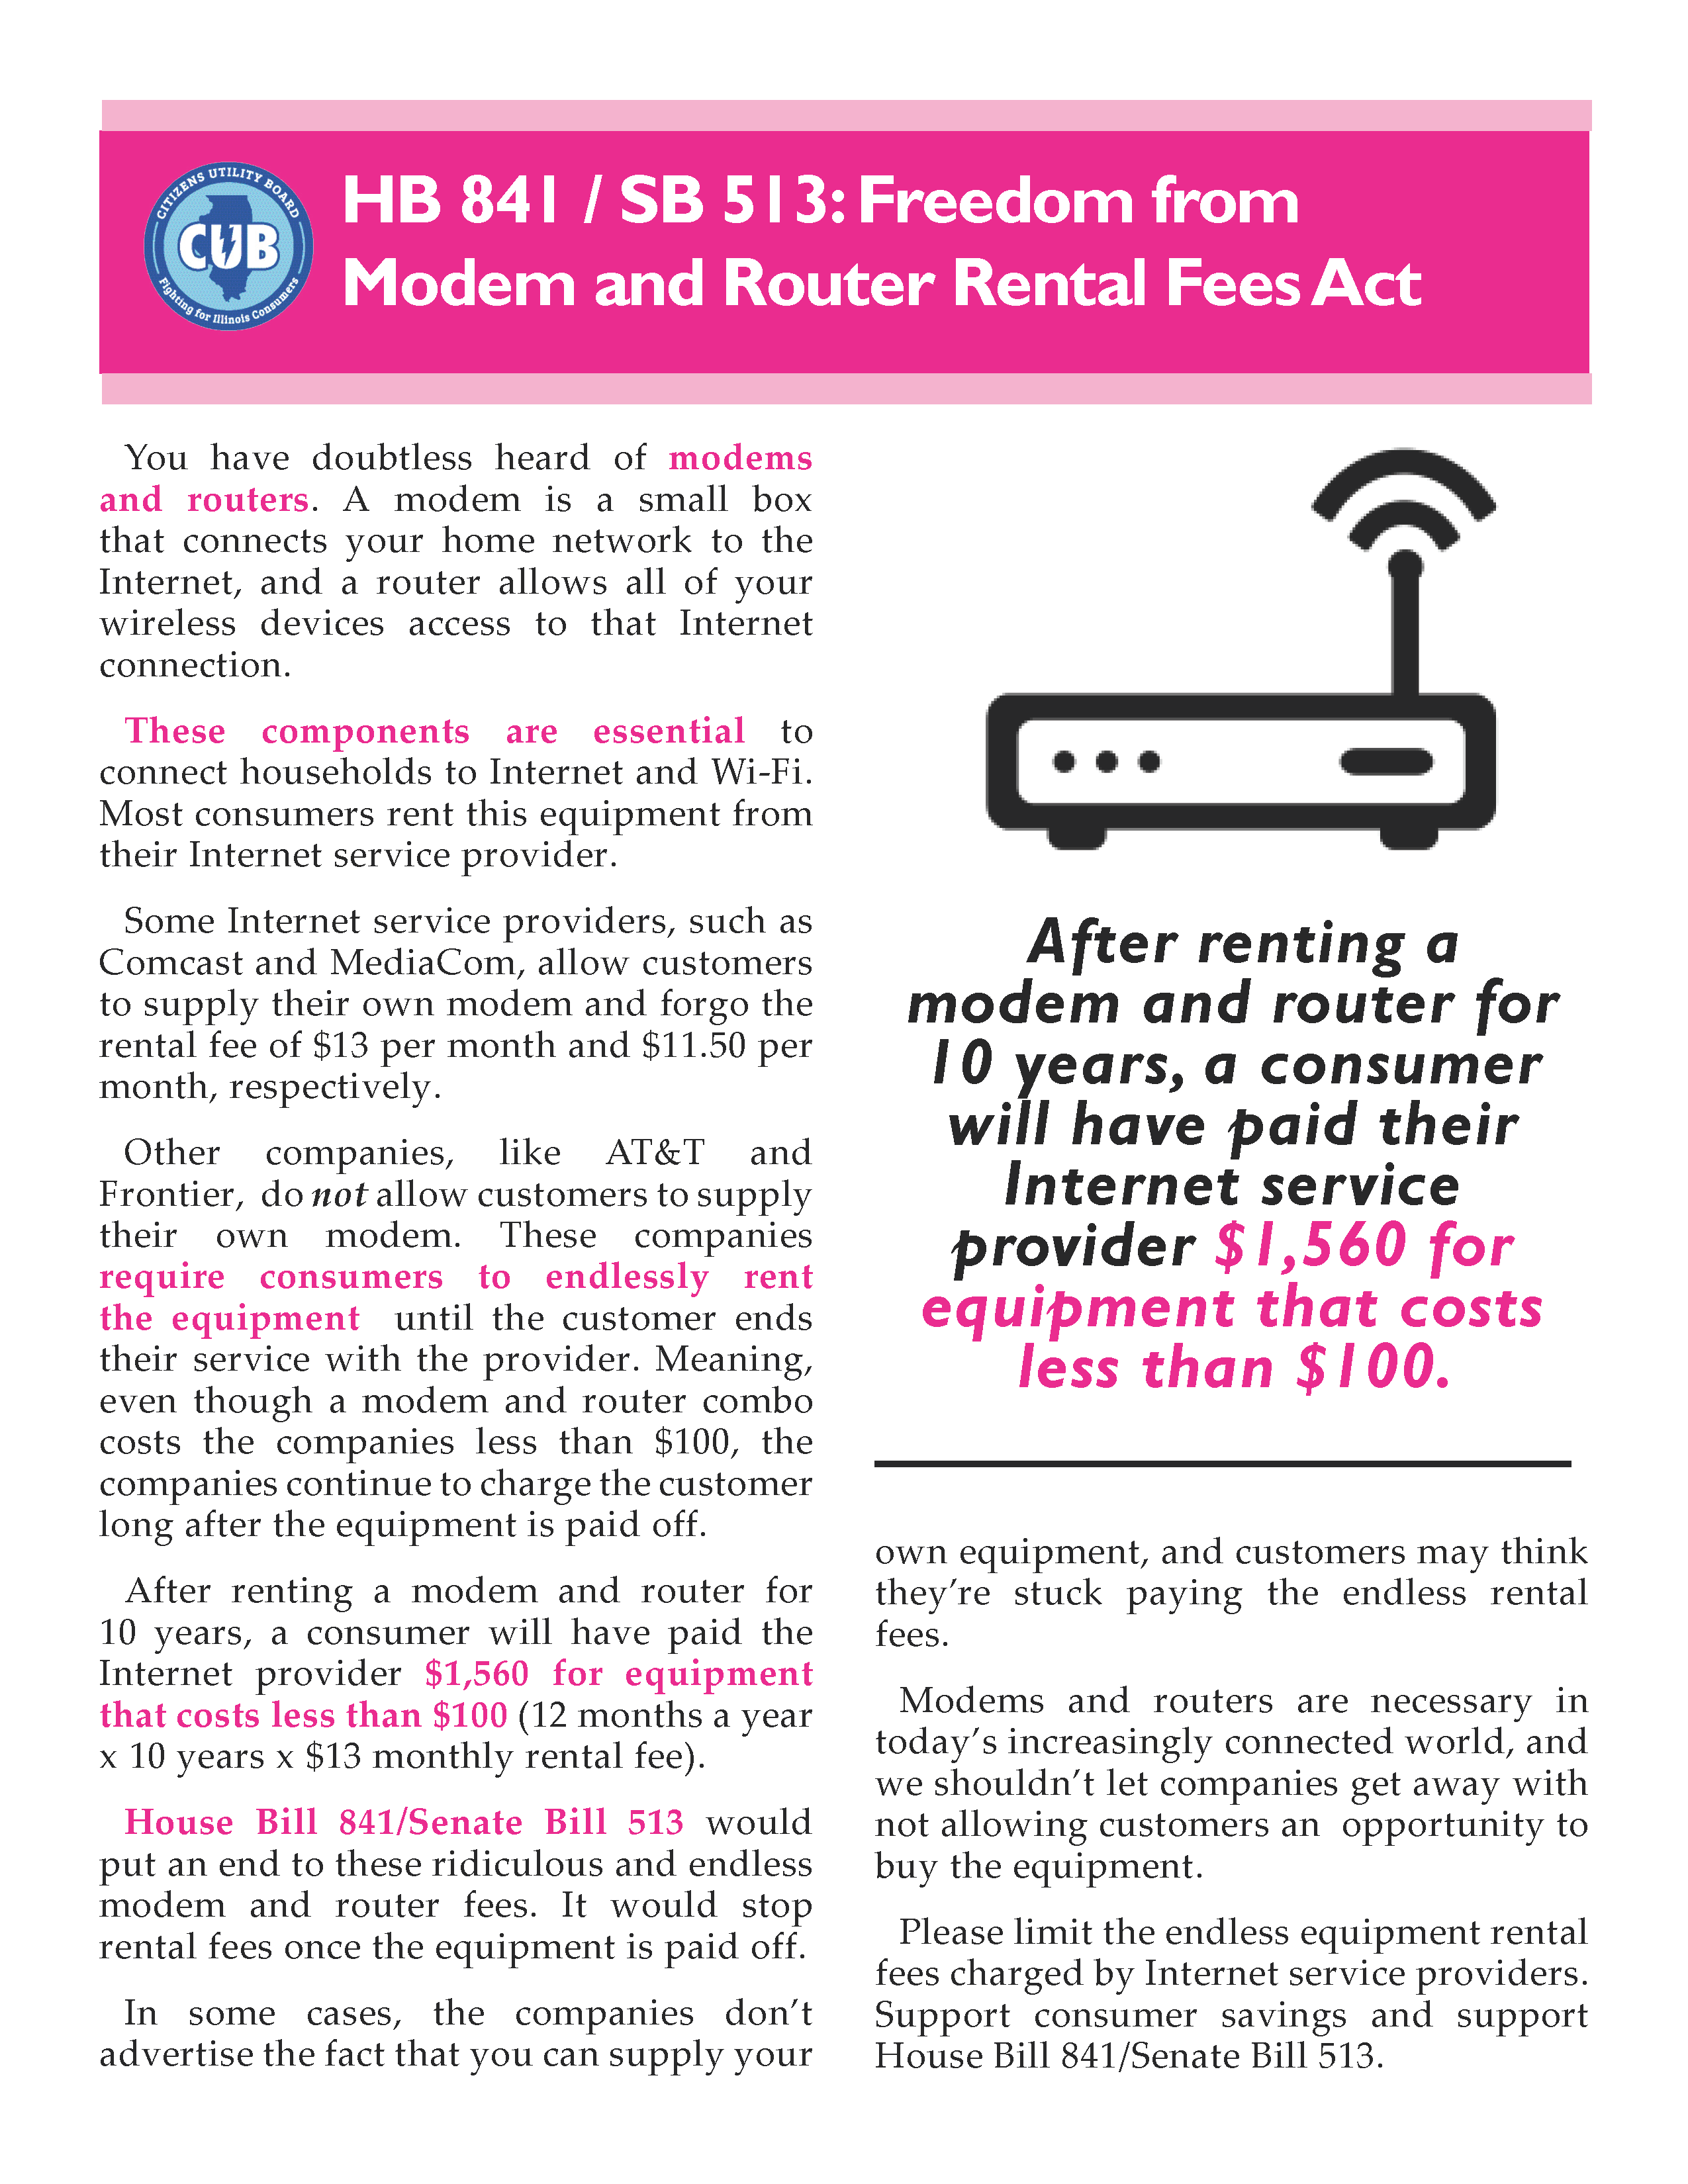 Freedom from Modem/Router Rental Fees Act